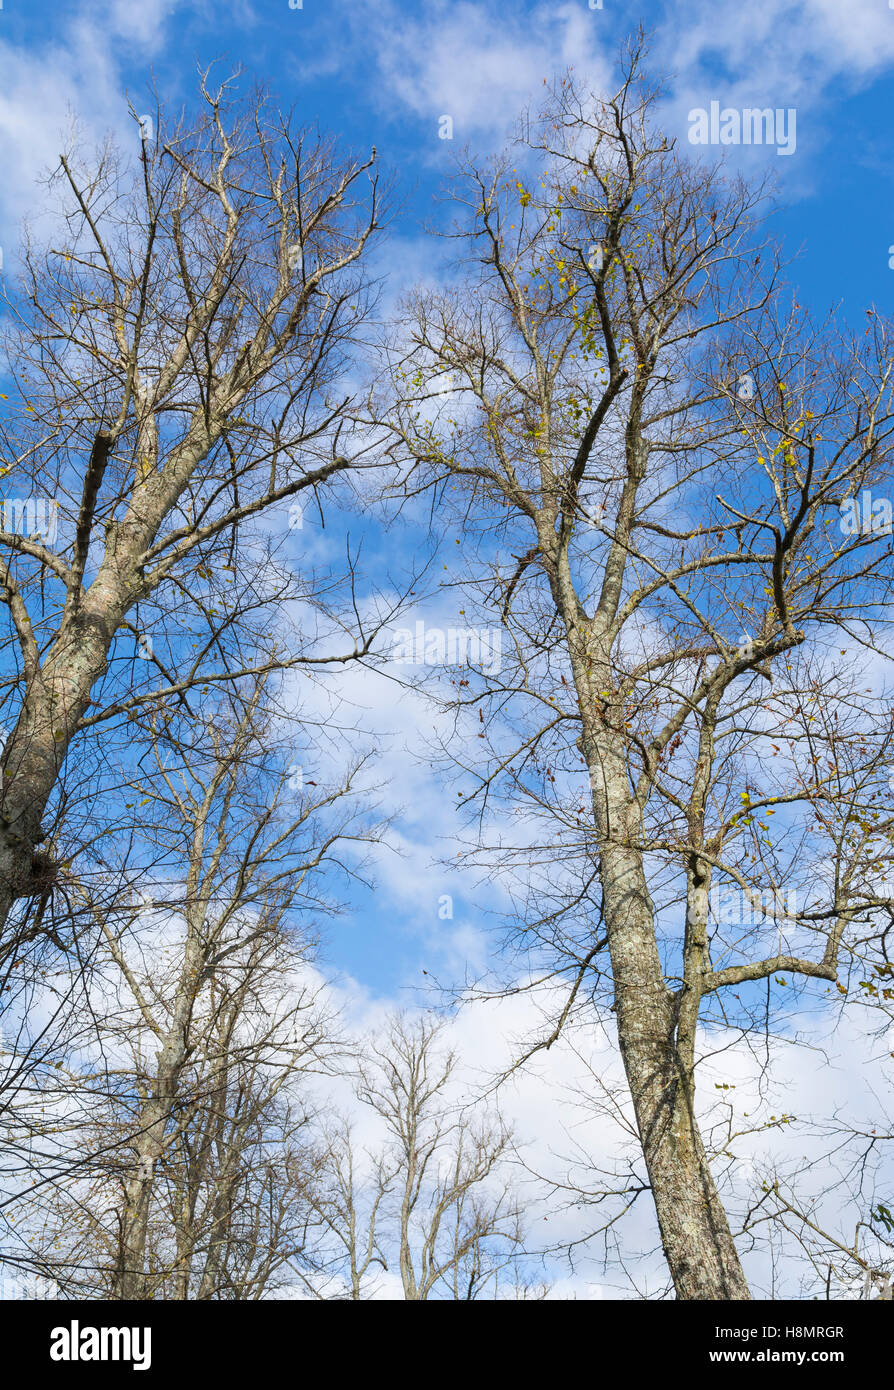 Looking up at bare trees in Winter against blue sky. - Stock Image